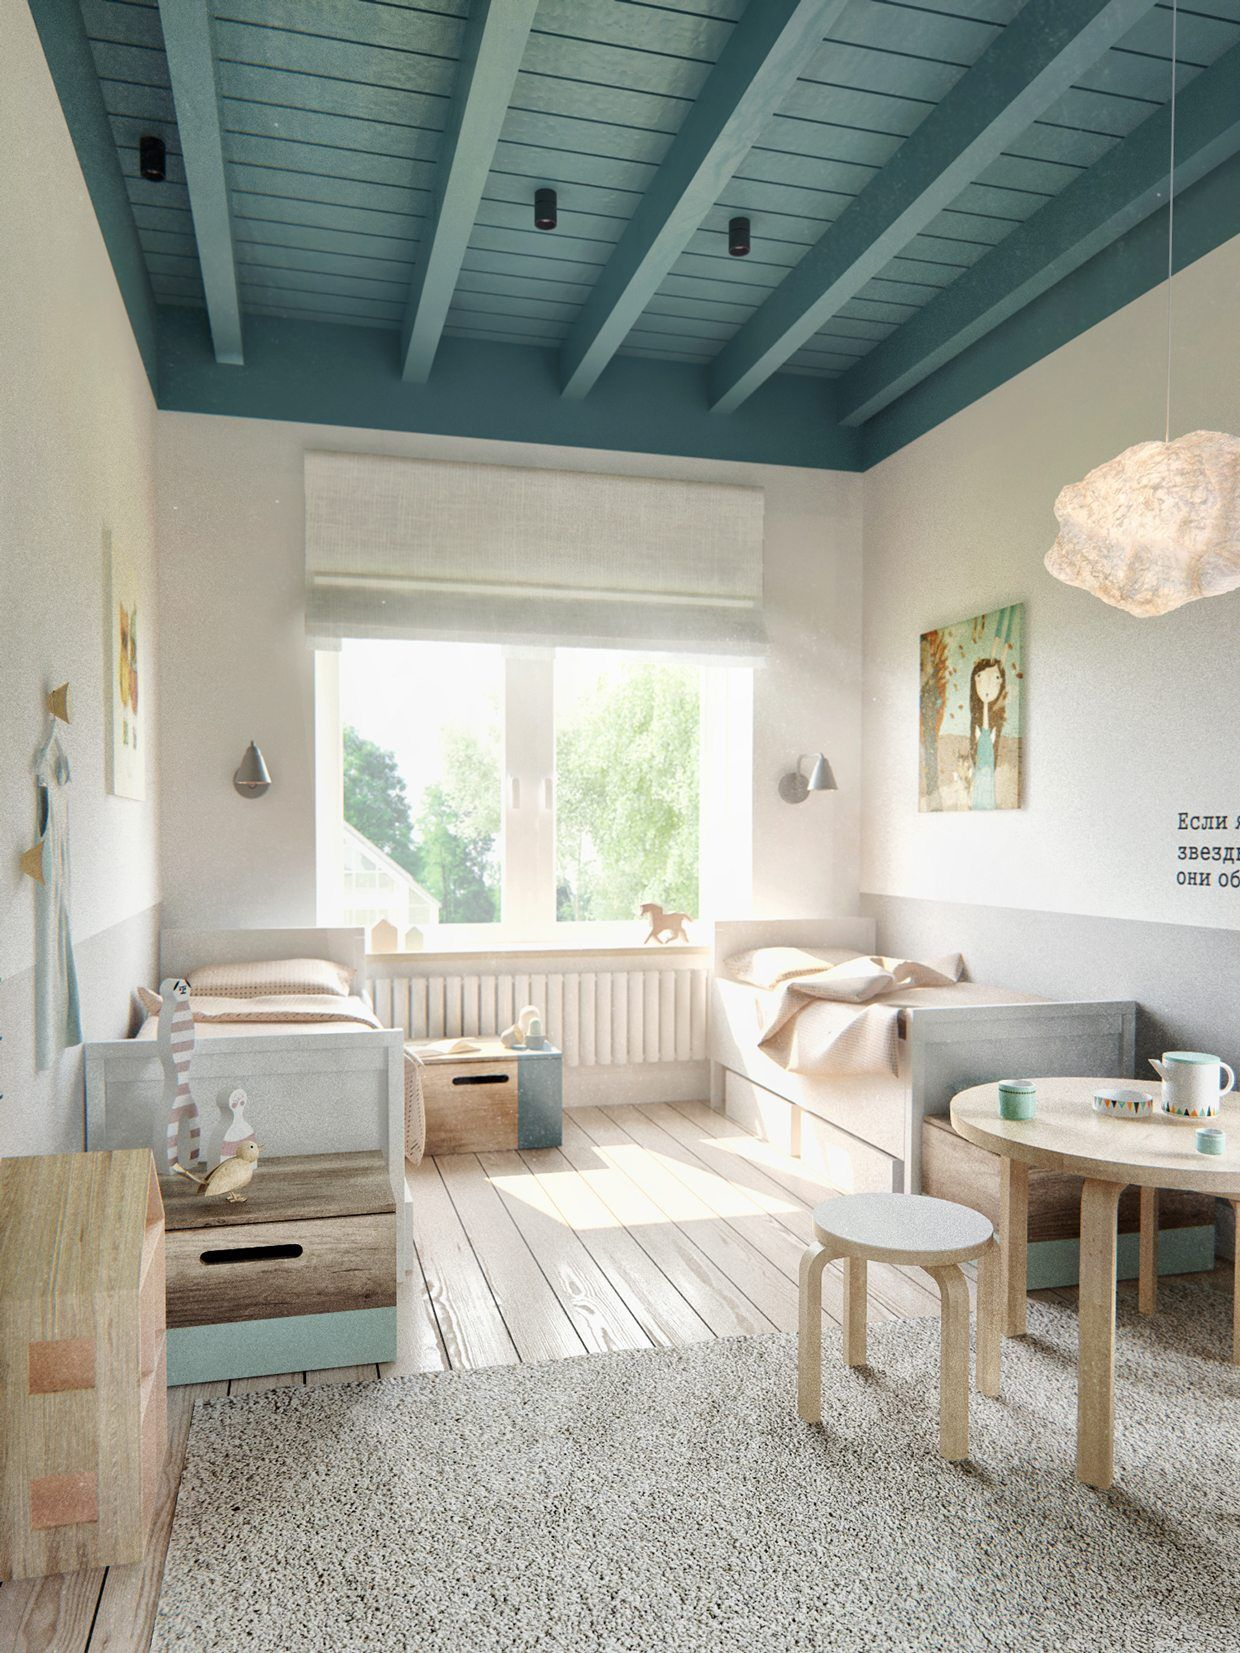 Homedesigning A Duplex Penthouse Designed With Scandinavian - A duplex penthouse designed with scandinavian aesthetics industrial elements includes floor plans